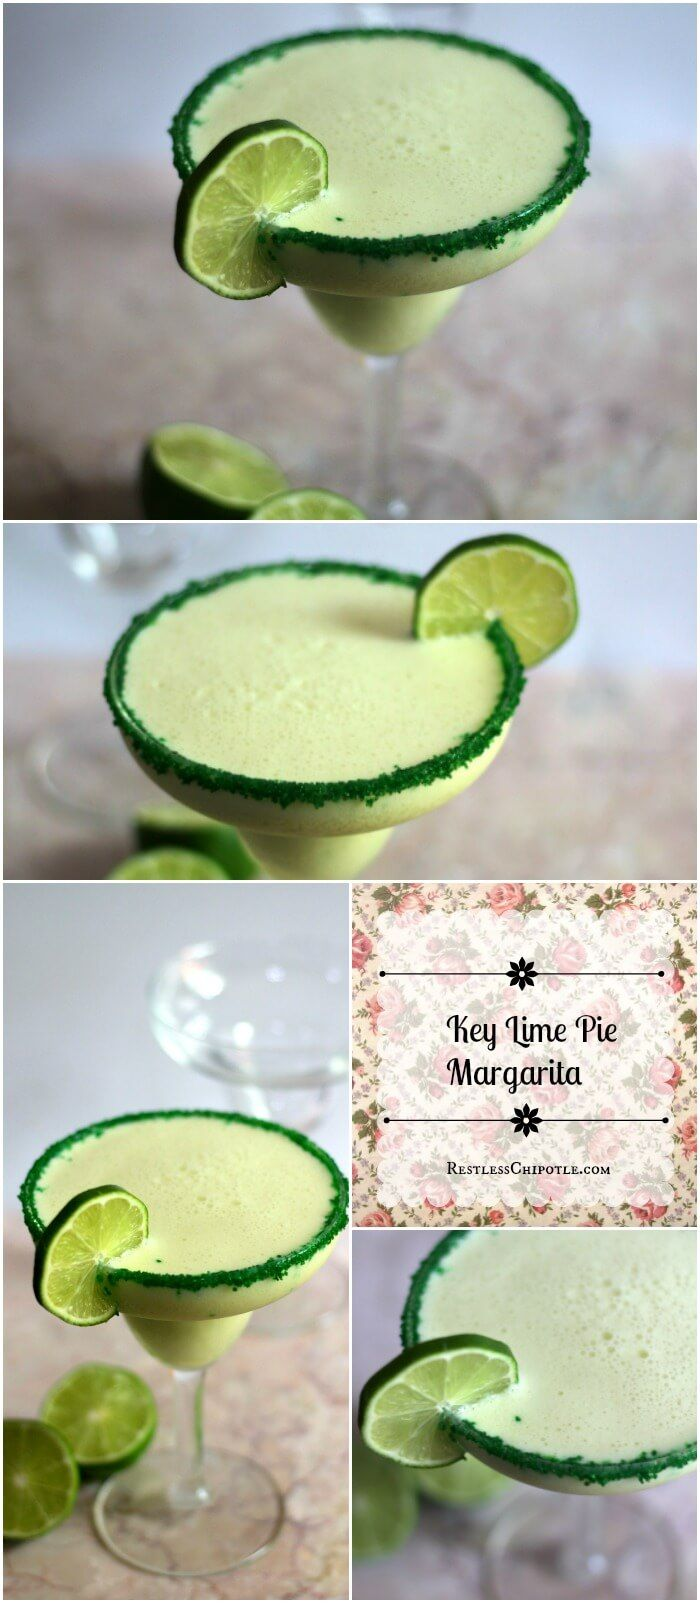 Key Lime Pie Margarita? Perfect cocktail for summer parties! From RestlessChipotle.com